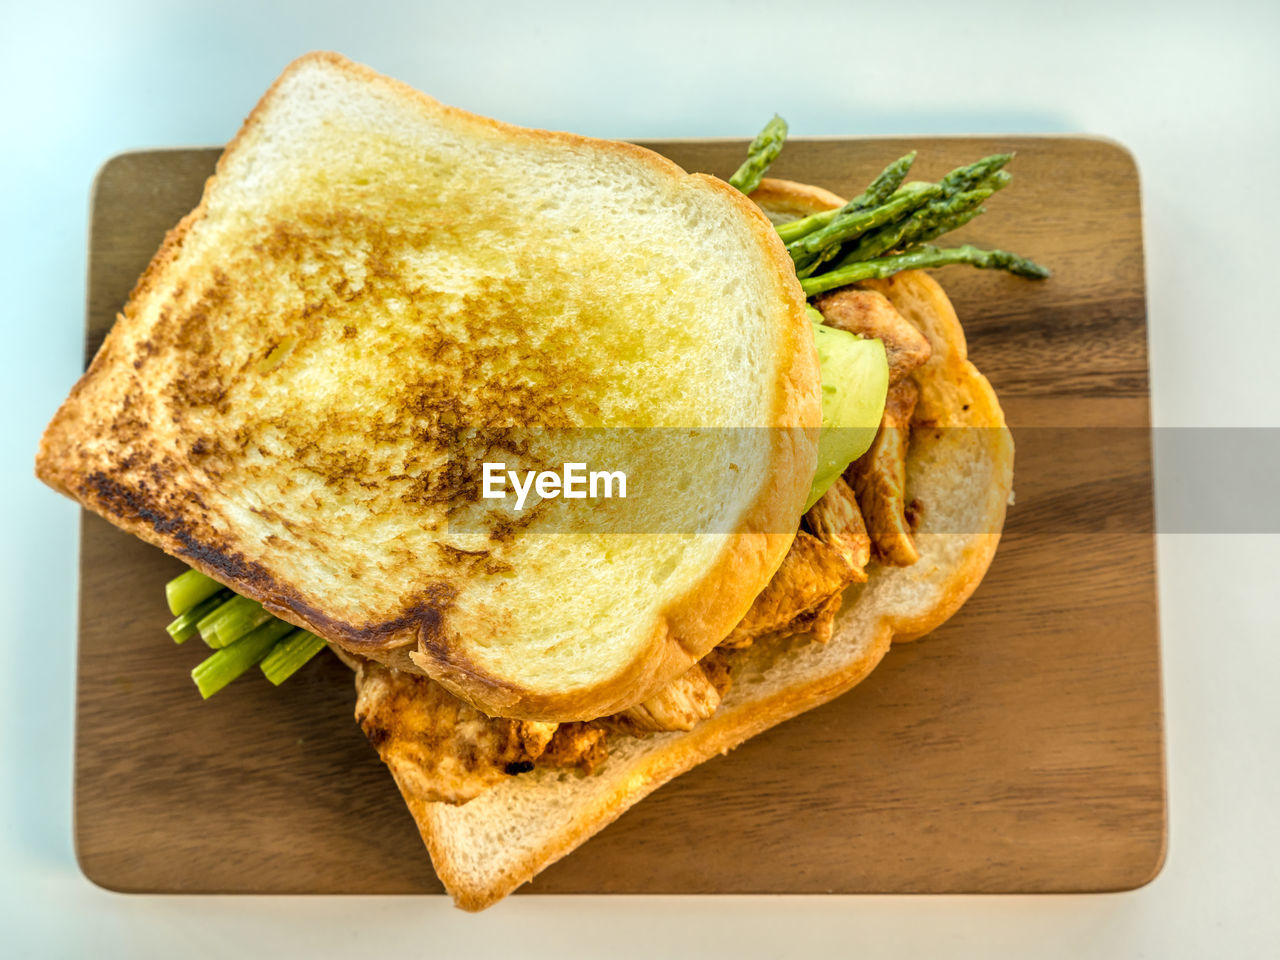 food, food and drink, bread, freshness, ready-to-eat, sandwich, indoors, still life, wellbeing, close-up, healthy eating, vegetable, no people, table, snack, cutting board, high angle view, serving size, toasted bread, plate, breakfast